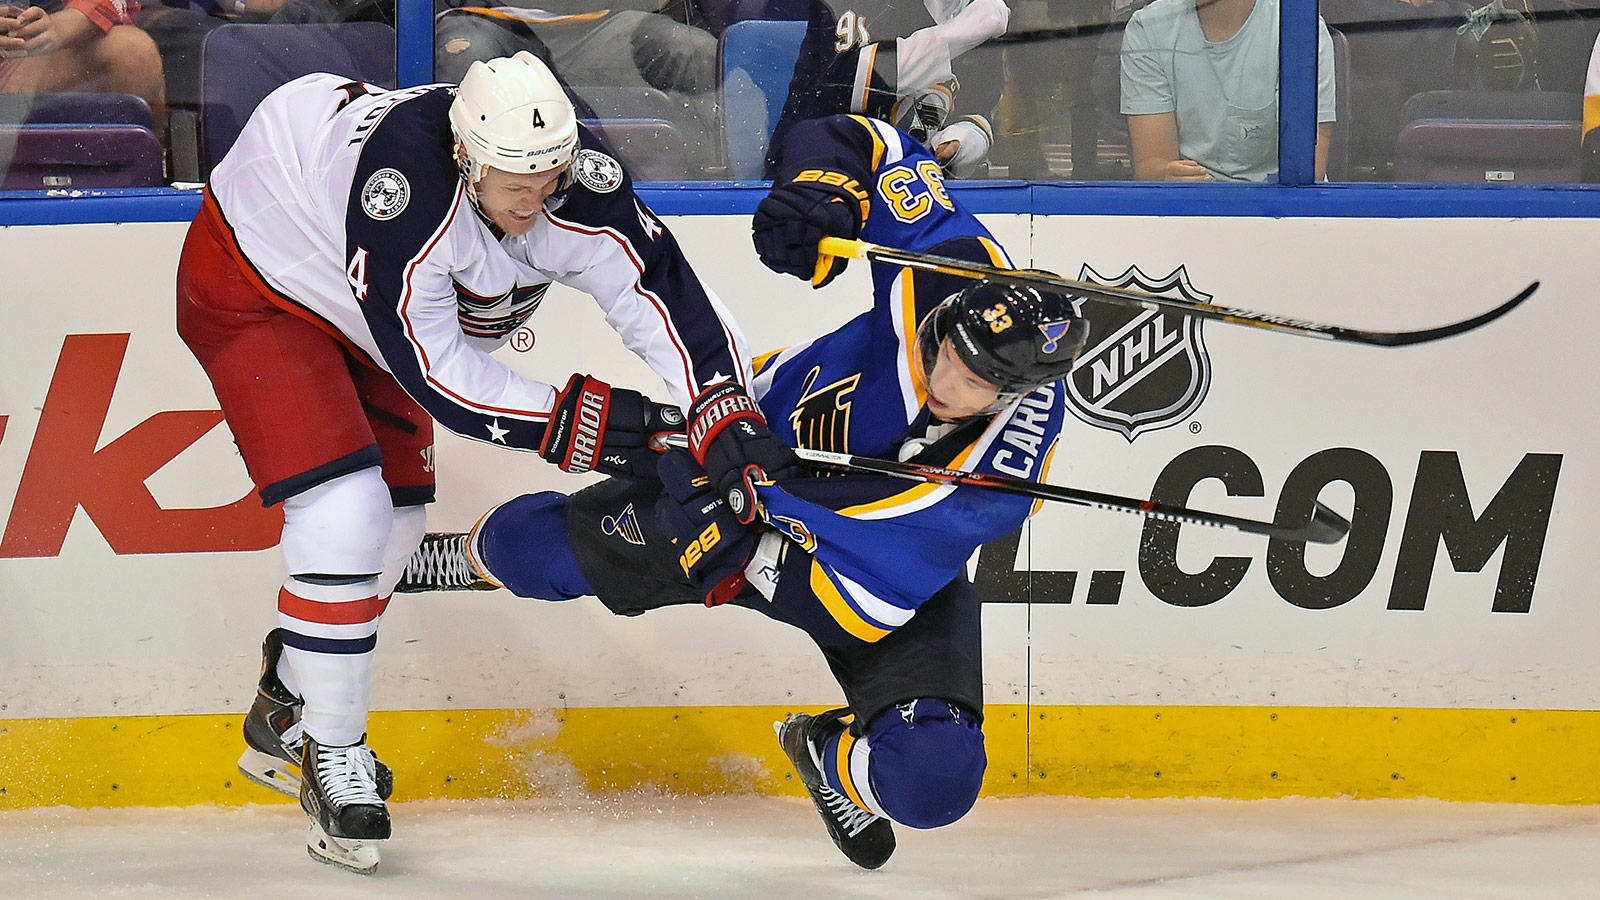 Blues' latest cuts: Caron and Copley sent to Wolves